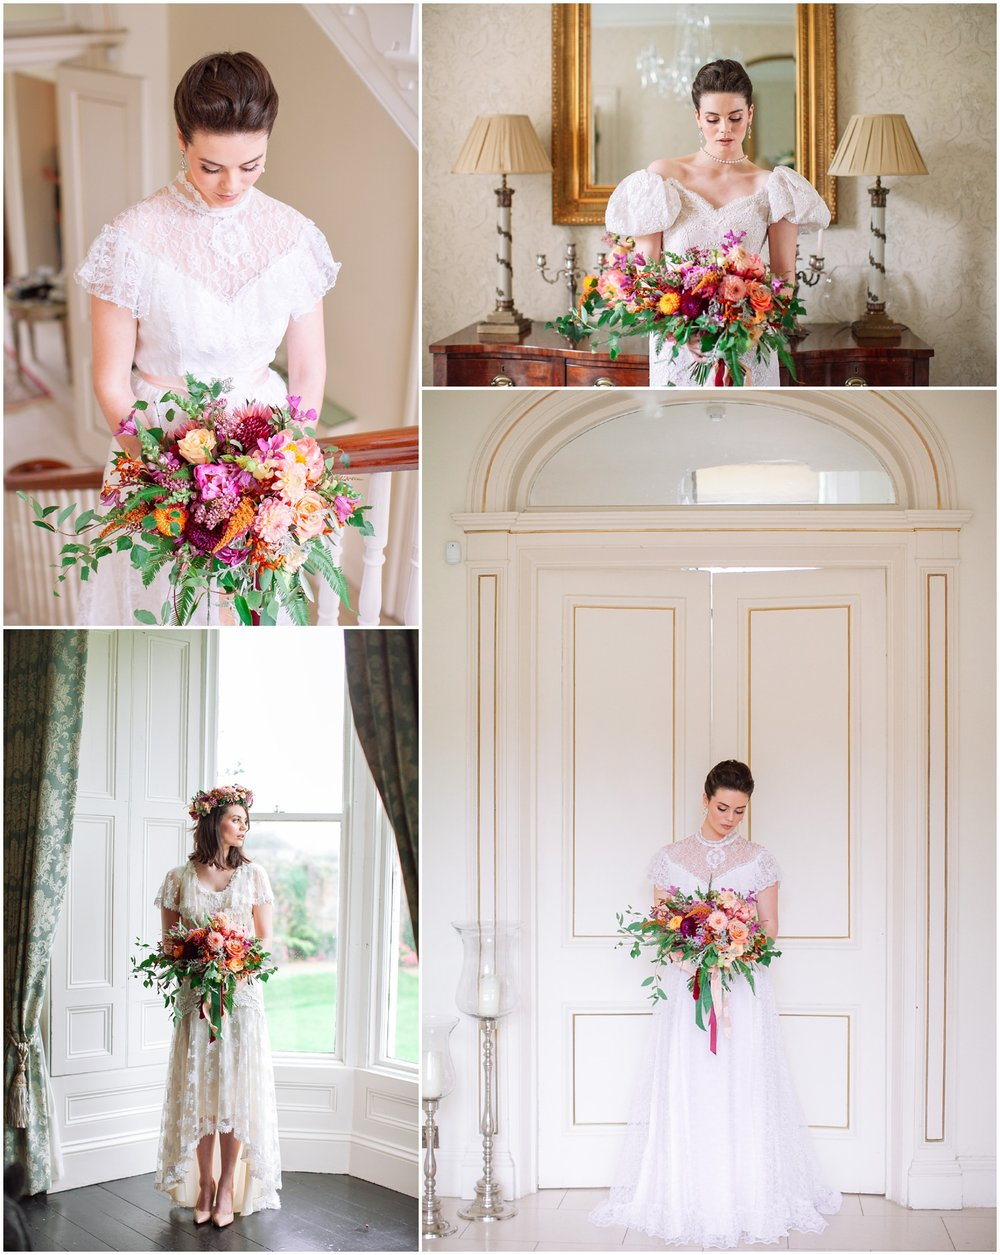 Styling by   The Wedding Expert   | Flowers by   Frog Prince Design   | Make Up by   Rebecca O'Sullivan   | Hair by   Claire Barry   | Dresses by   Dirty Fabulous   | Venue   Rosedale House   | Suits   Dorian Black